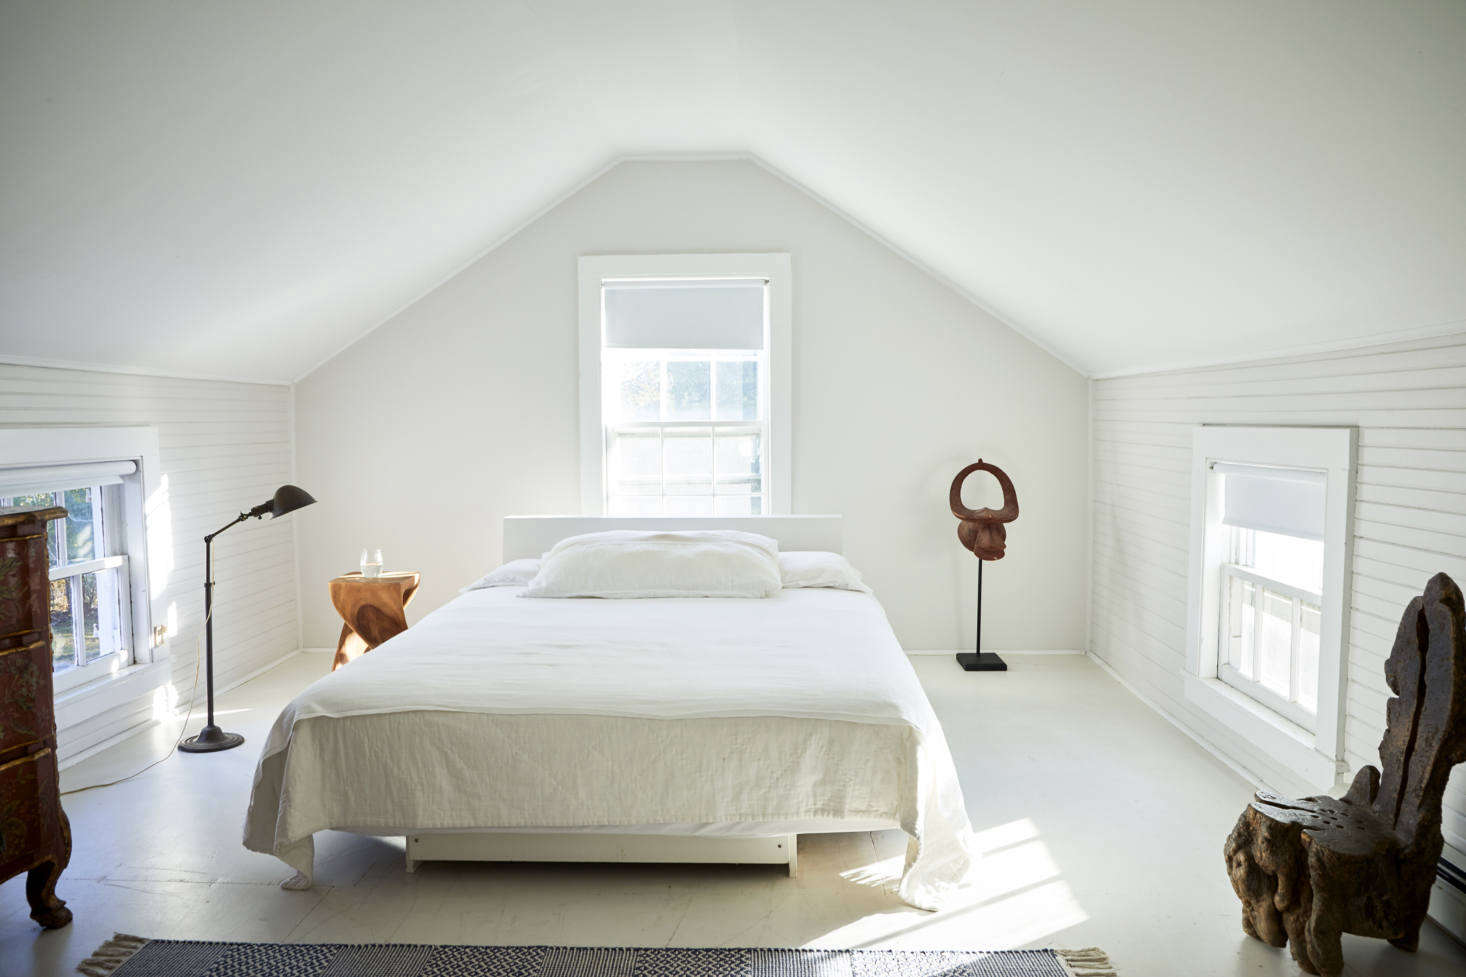 Set under the eaves, the master bedroom has a platform bed that Jonathan built from wood left over from the library shelves. It overlooks a large soaking tub at the other end of the room.